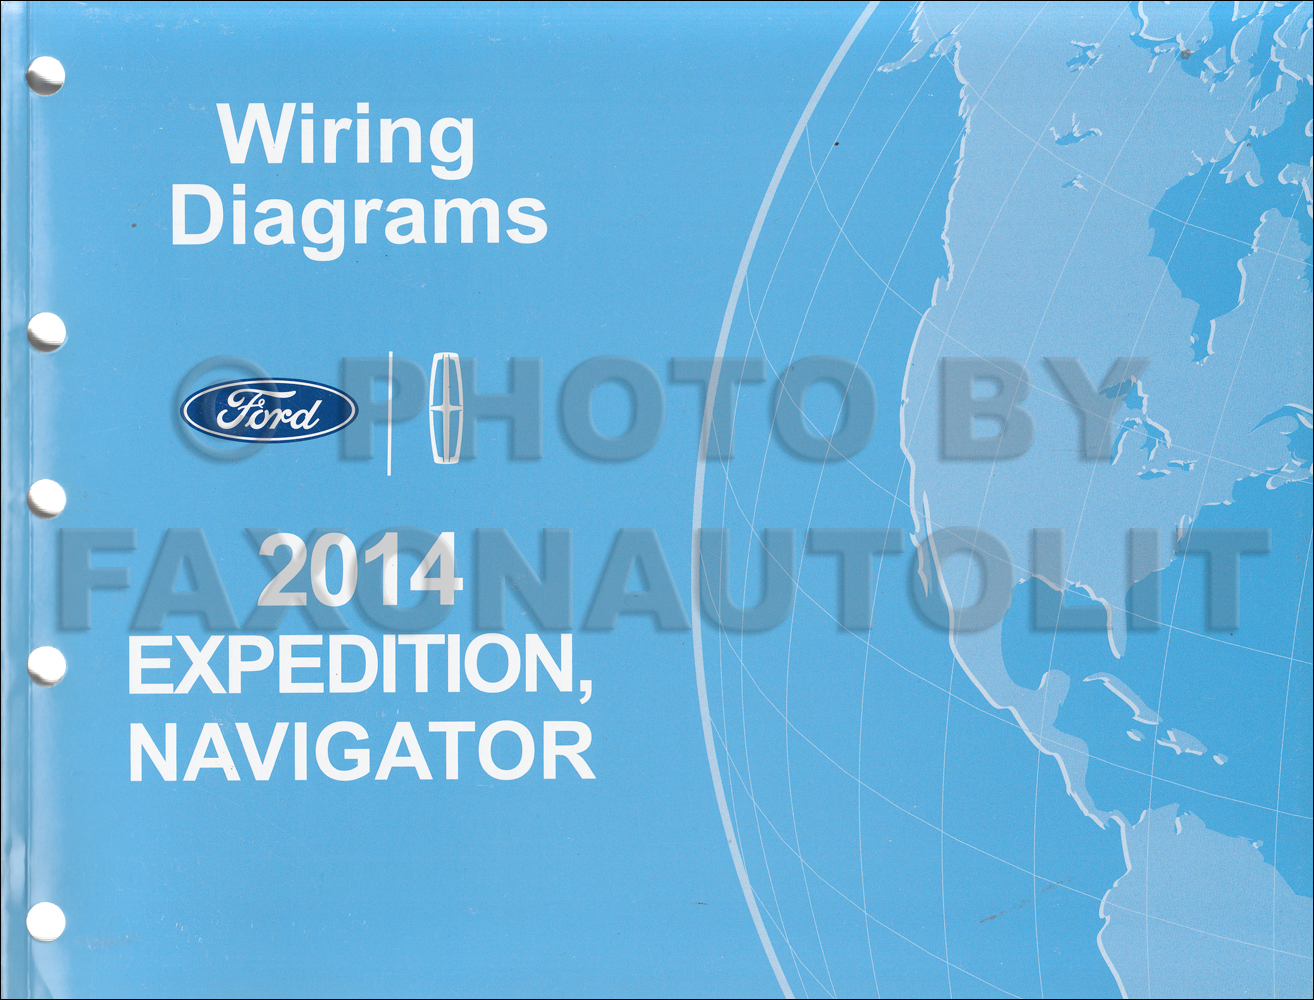 2014 Ford Expedition Lincoln Navigator Wiring Diagram Manual Original